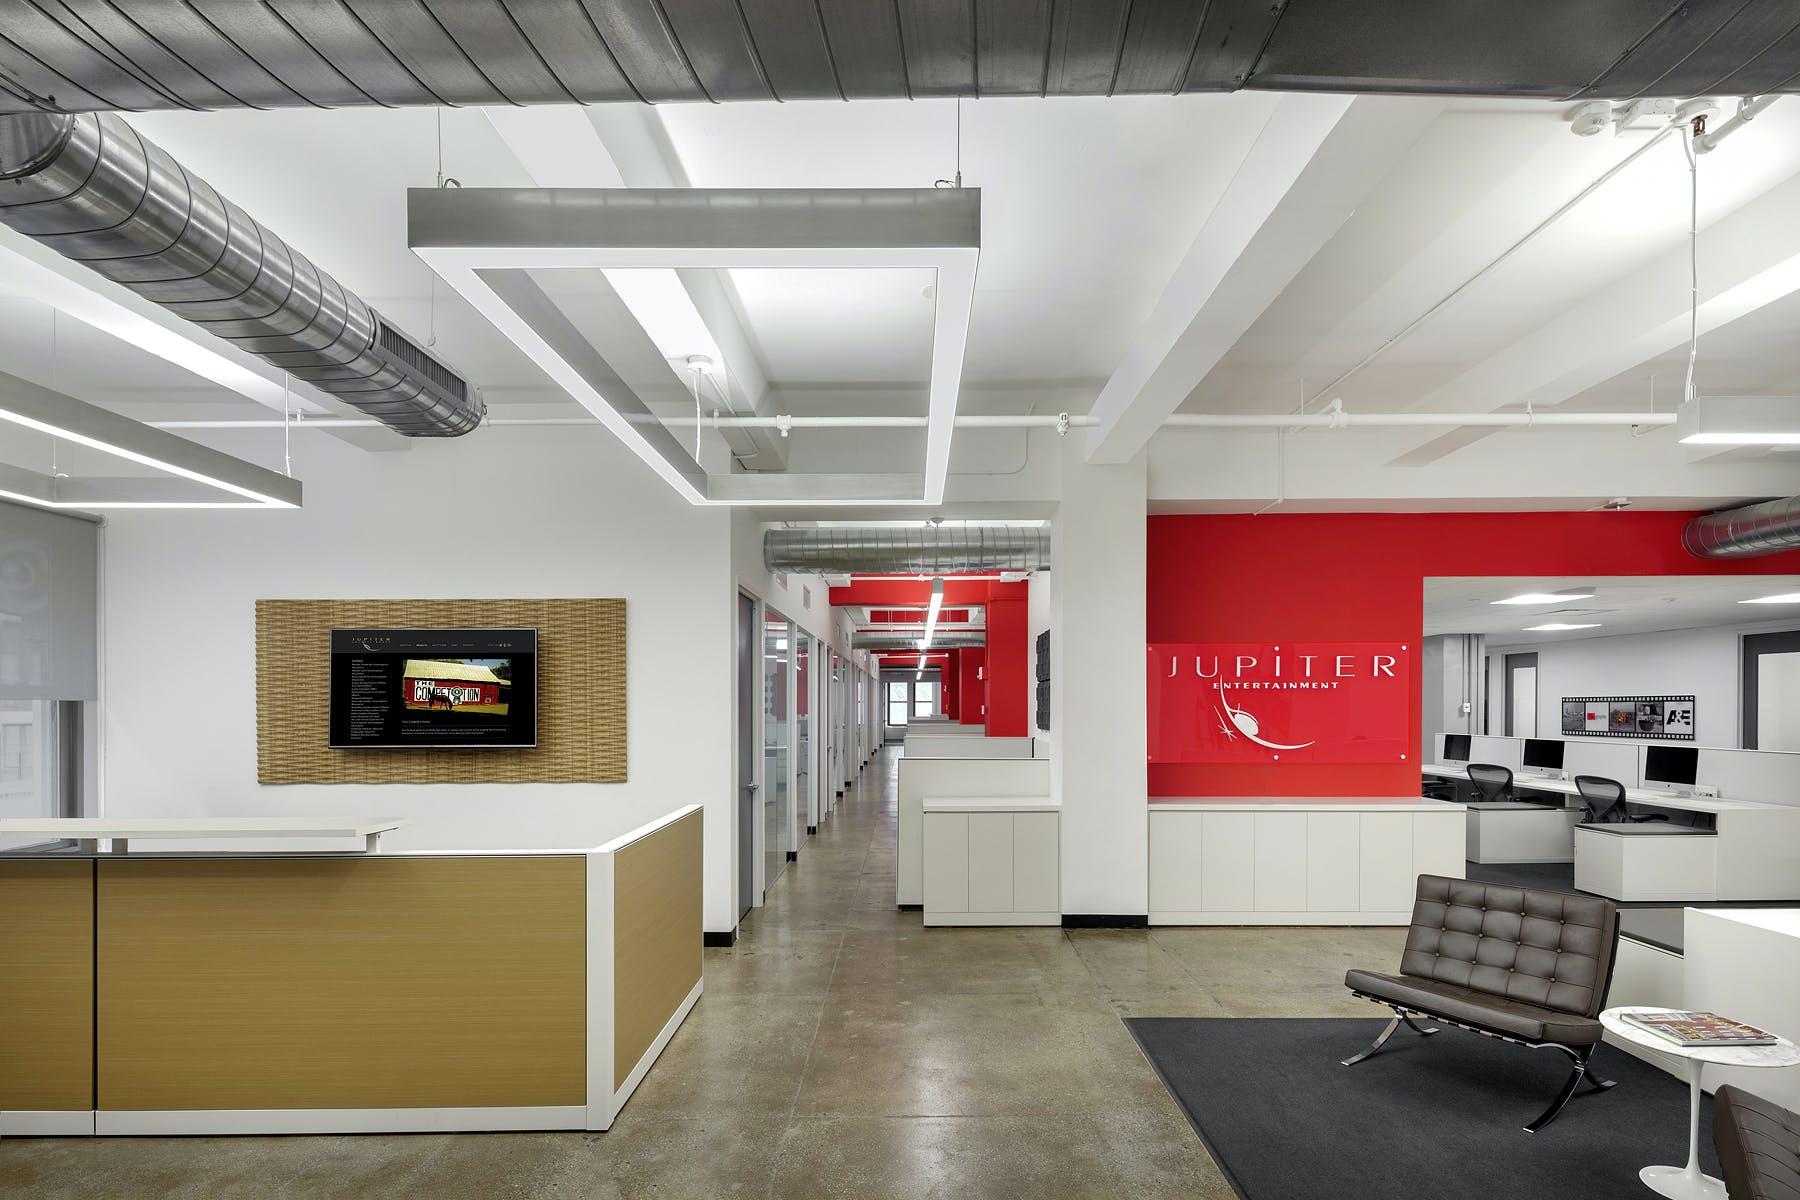 office studios craft madgi provided fullfloor office design and buildout for jupiter entertainments newly completed 20000 sf nyc space production studios designs office space